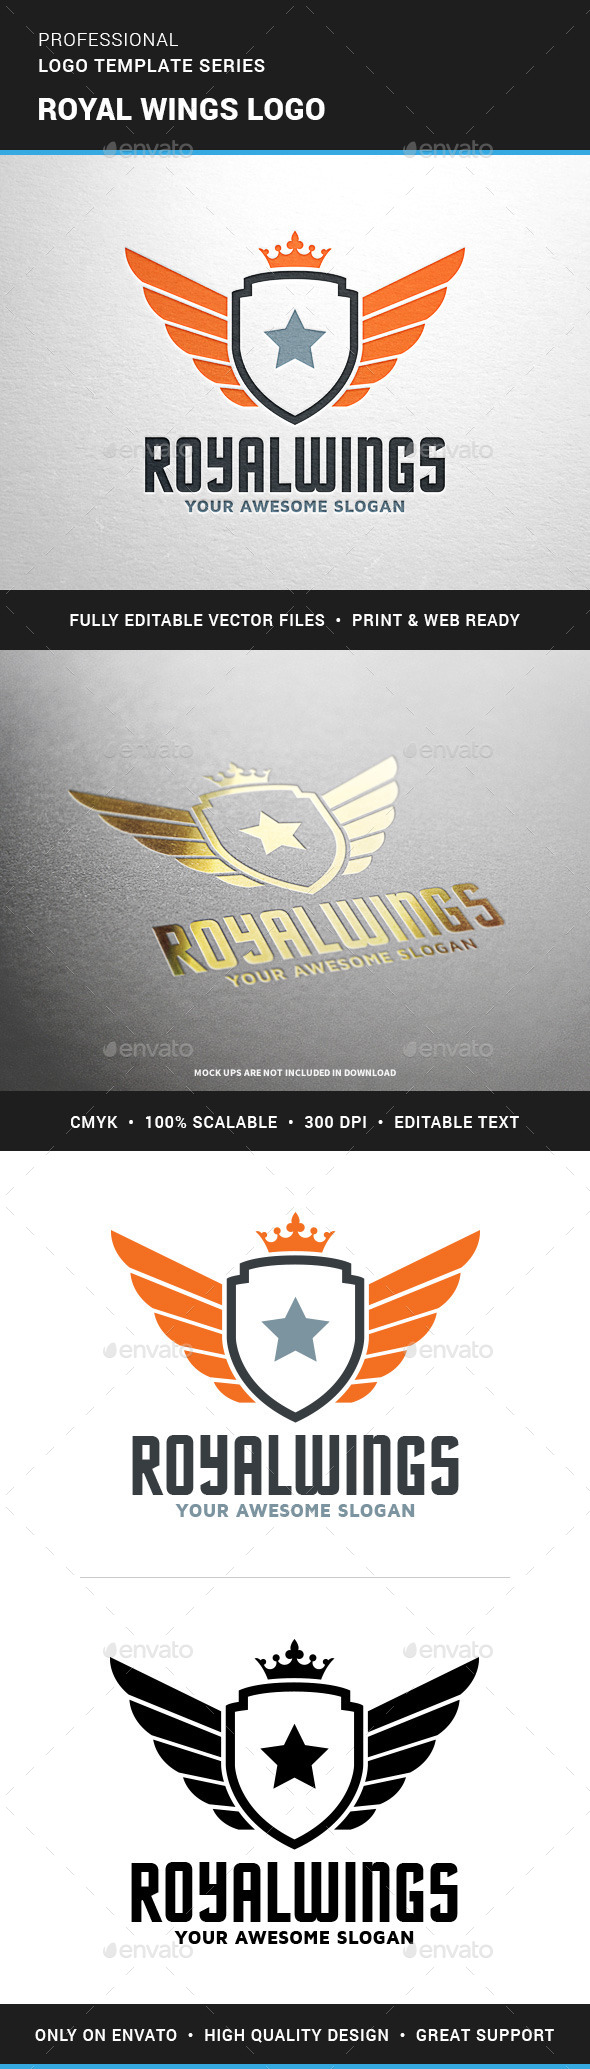 Royal Wings Logo Template - Crests Logo Templates